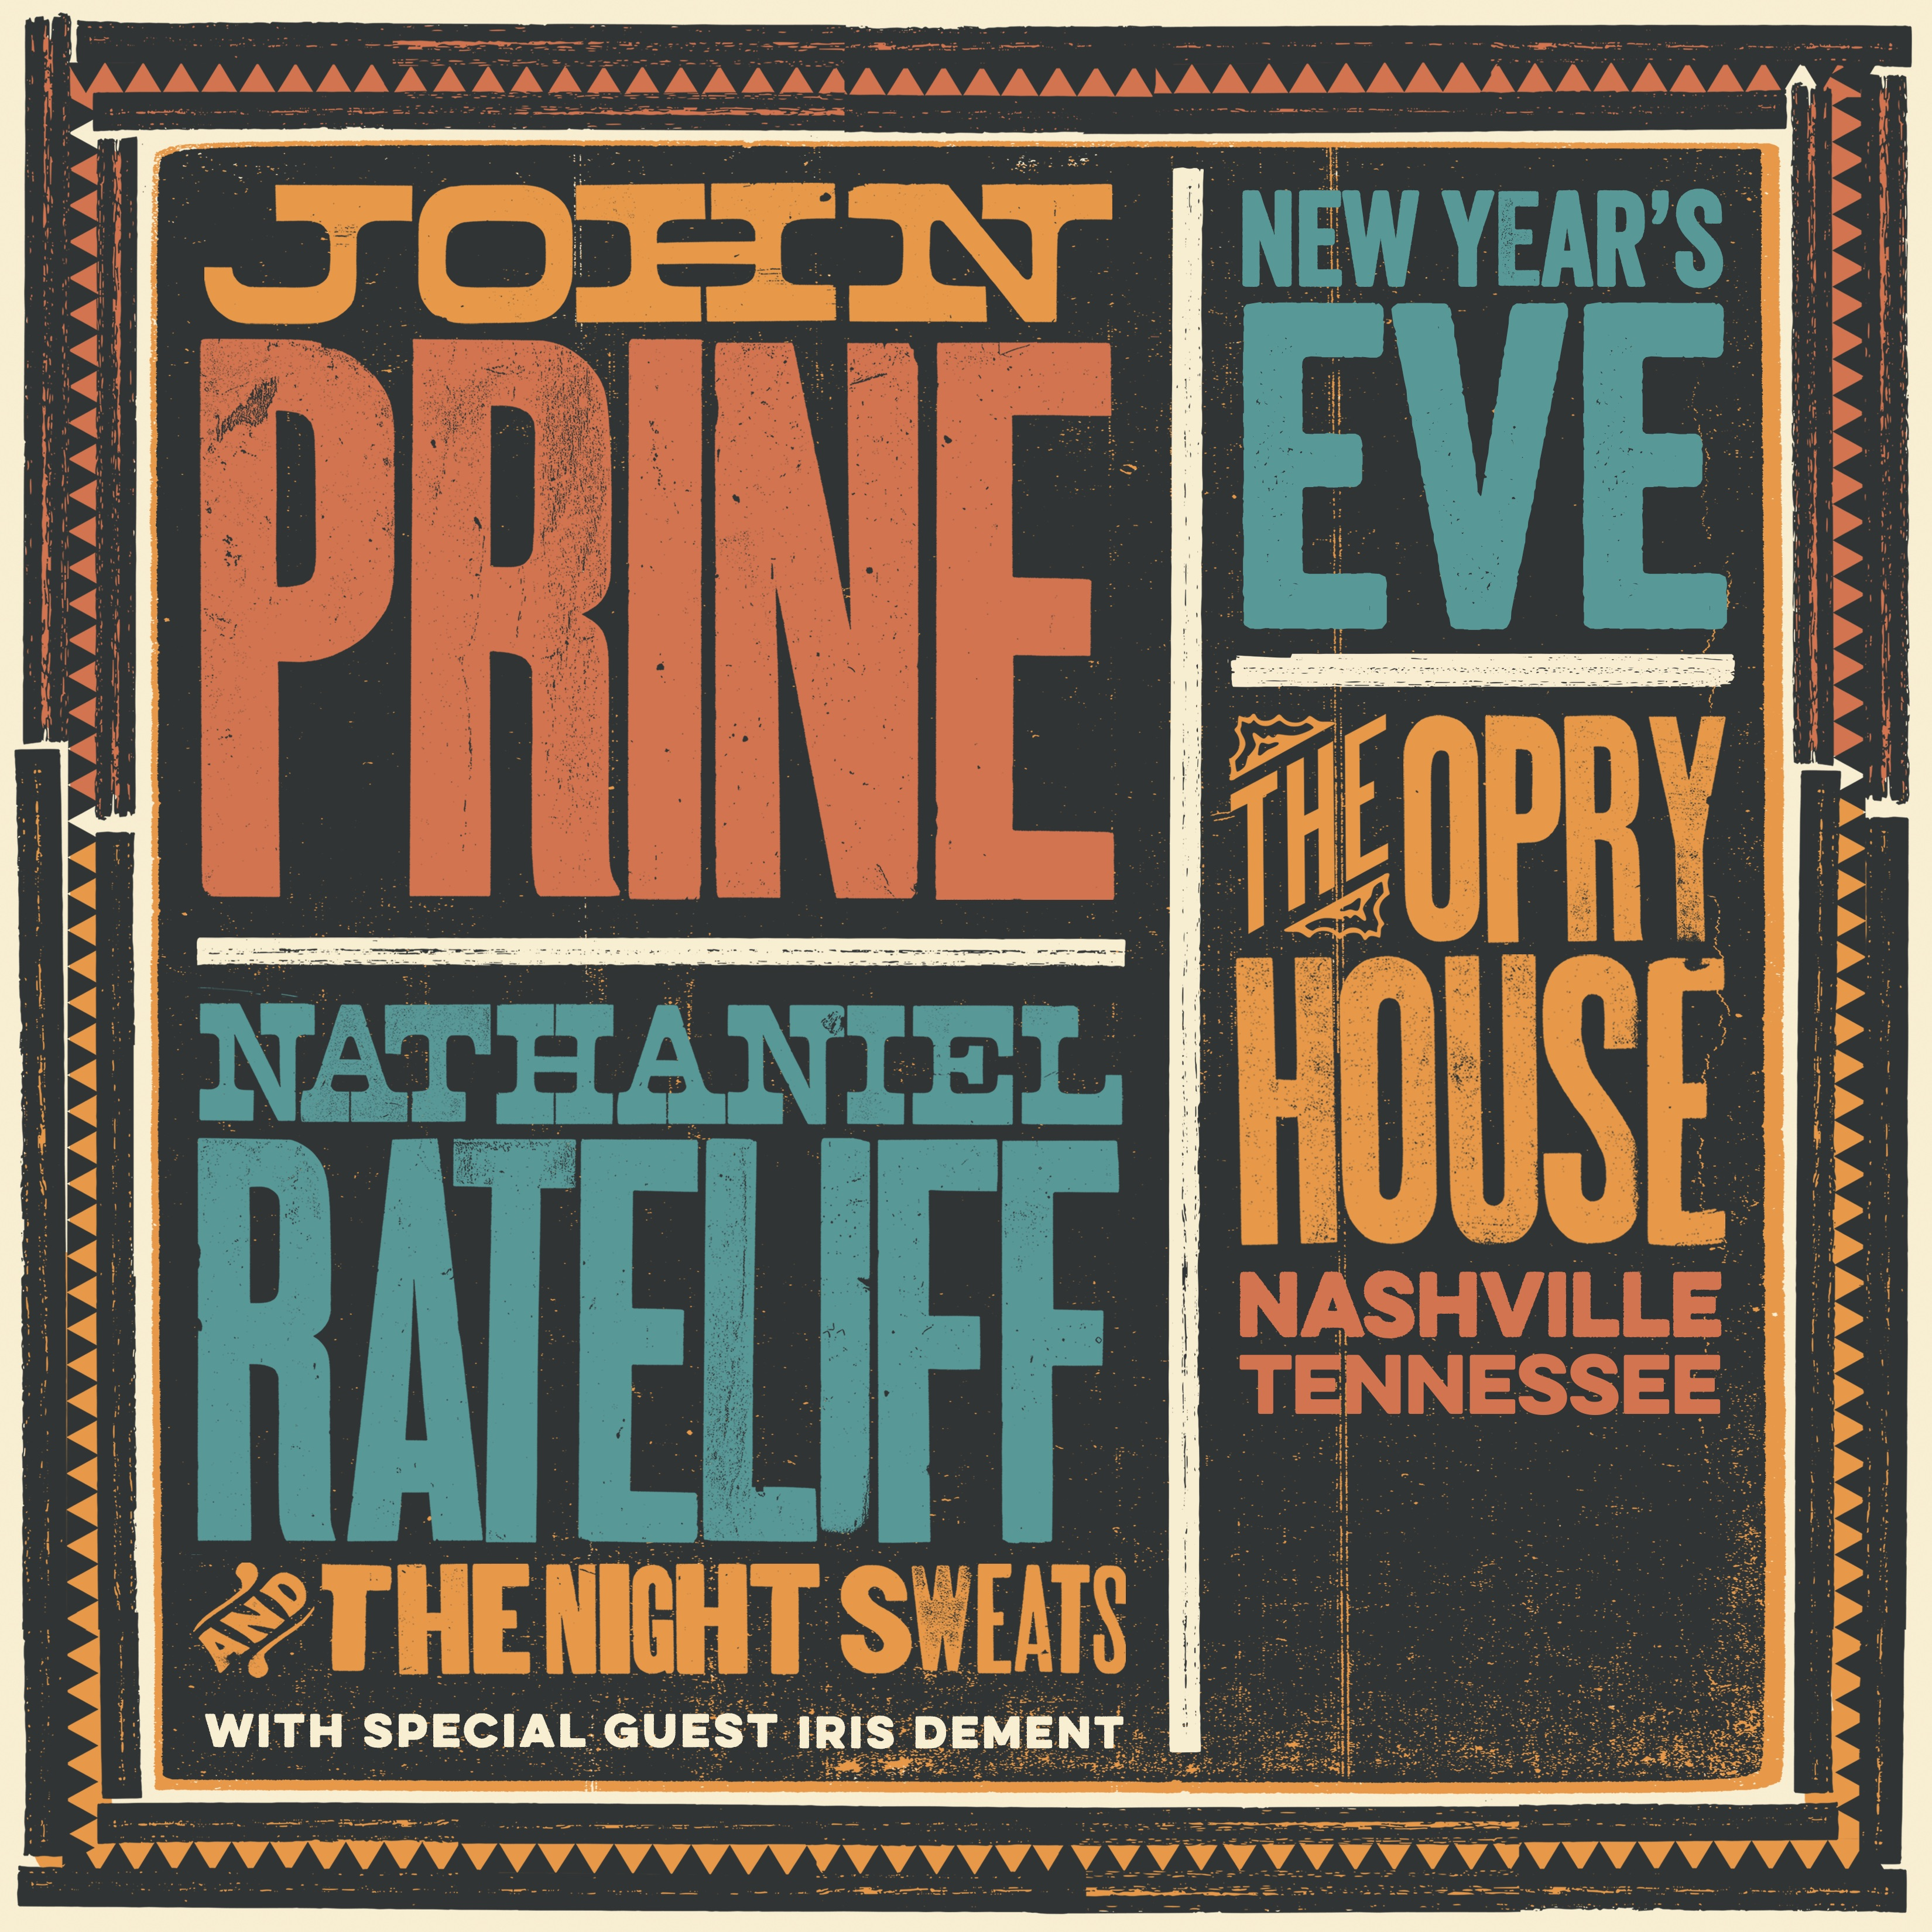 Celebrate New Year's Eve in Nashville with John at the Grand Ole Opry!